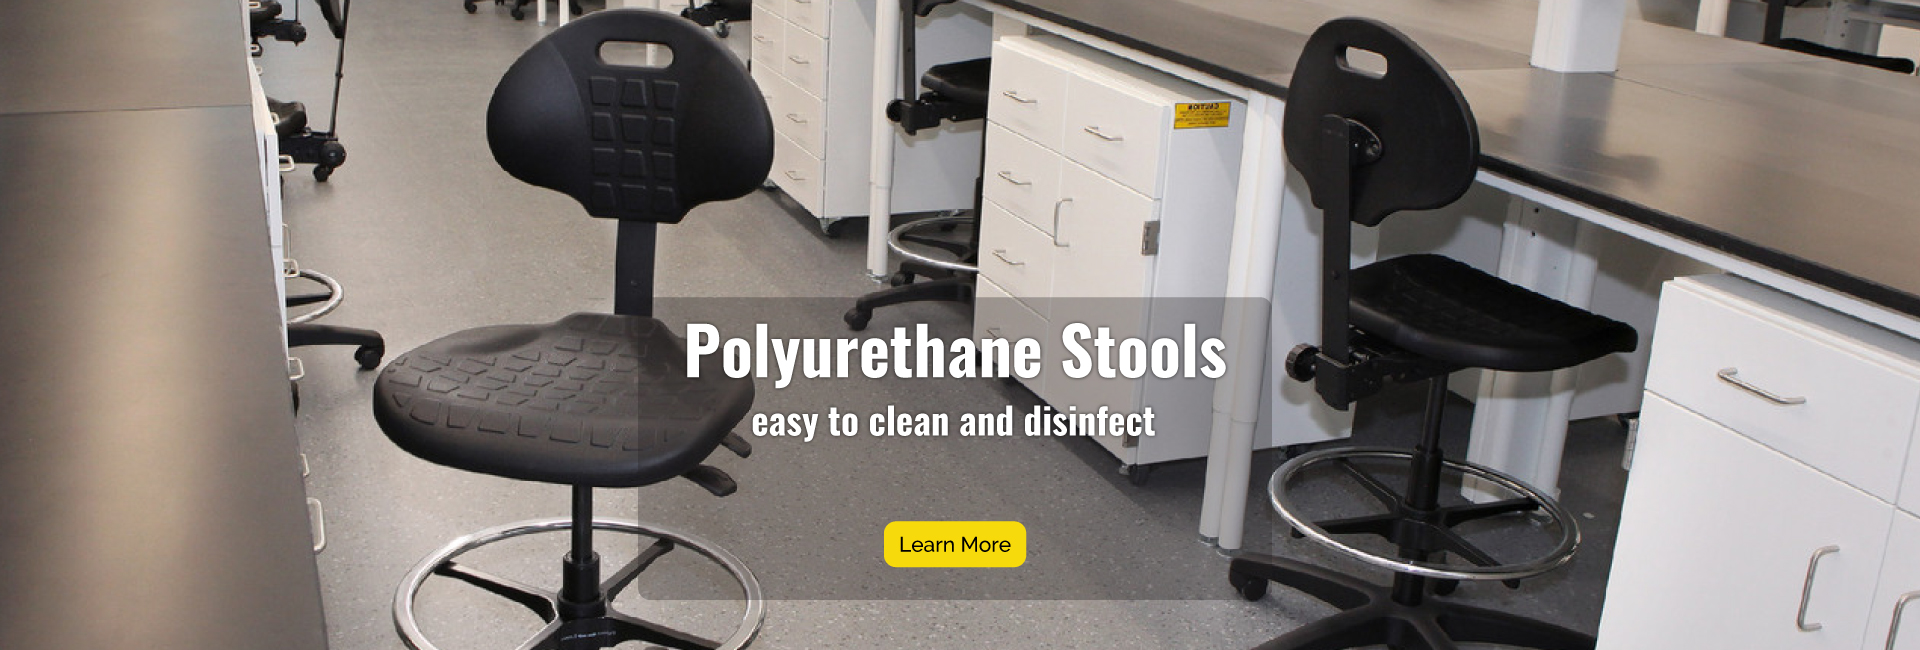 Polyrurethane Stools are easy to clean and disinfect